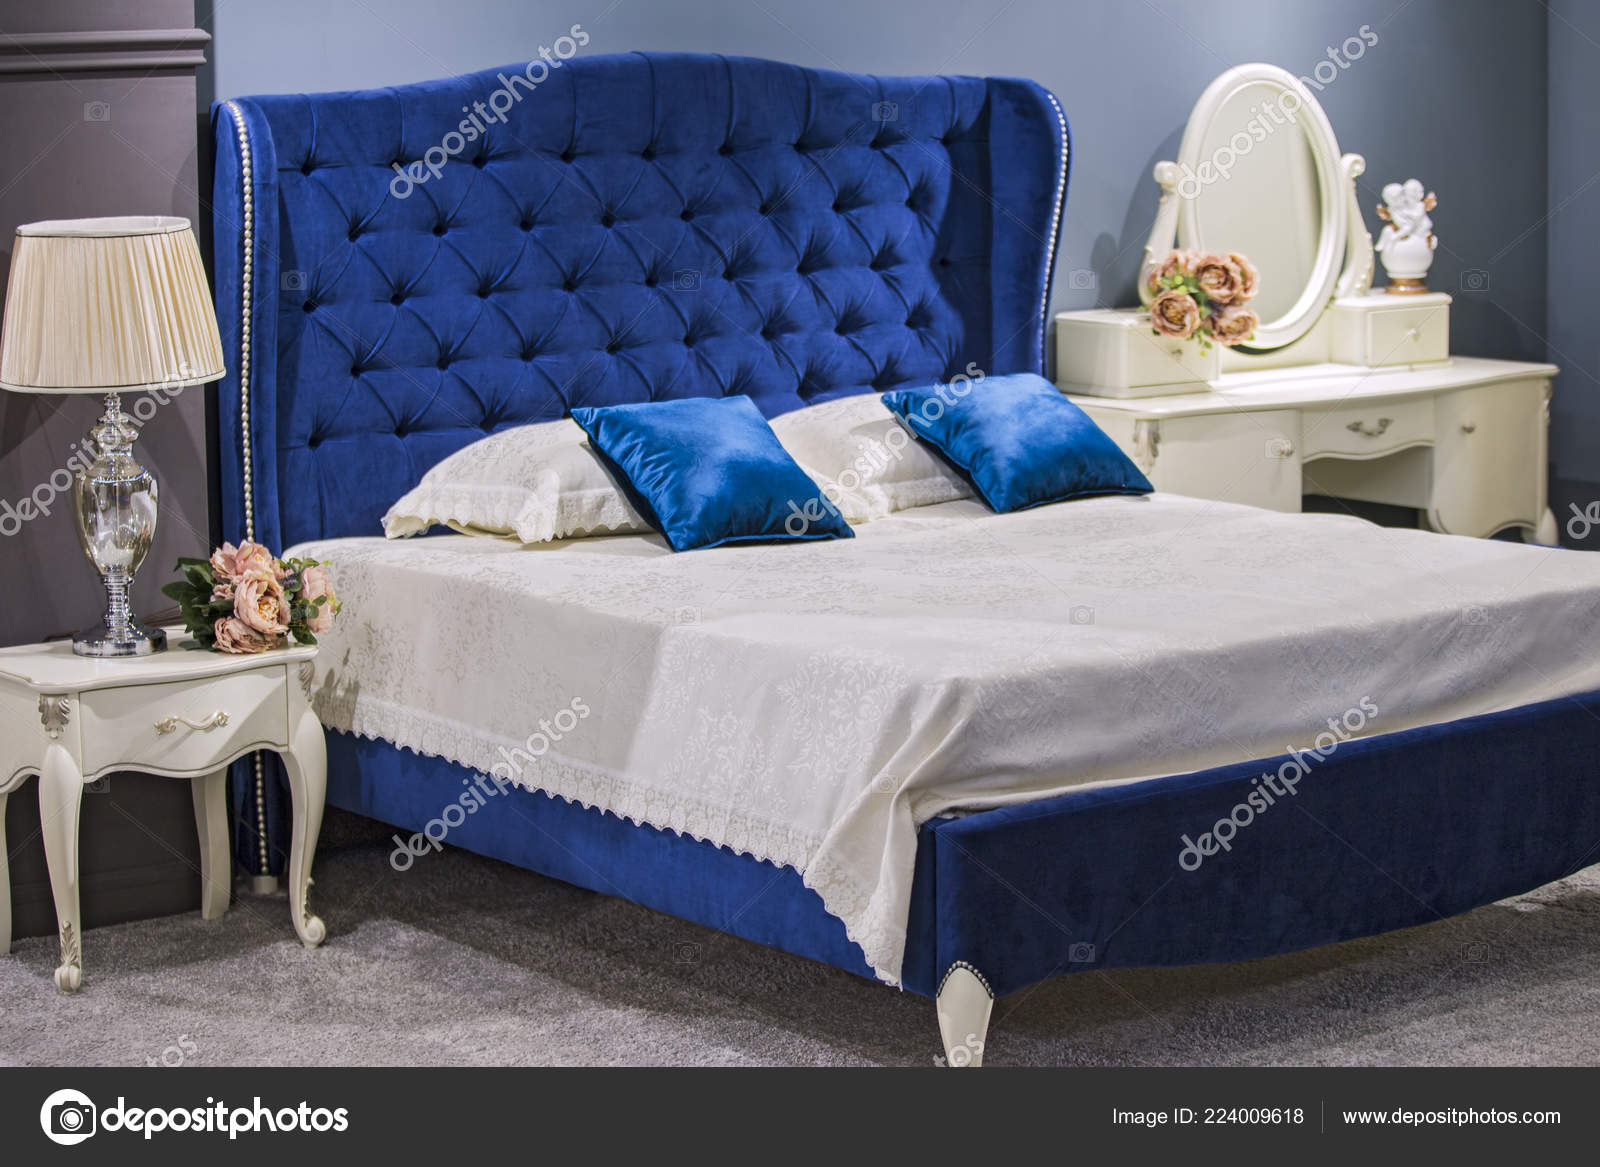 Luxury Royal Bedroom Antique Style Blue Velvet Bed White Nightstand Stock Photo Olga Prava 224009618